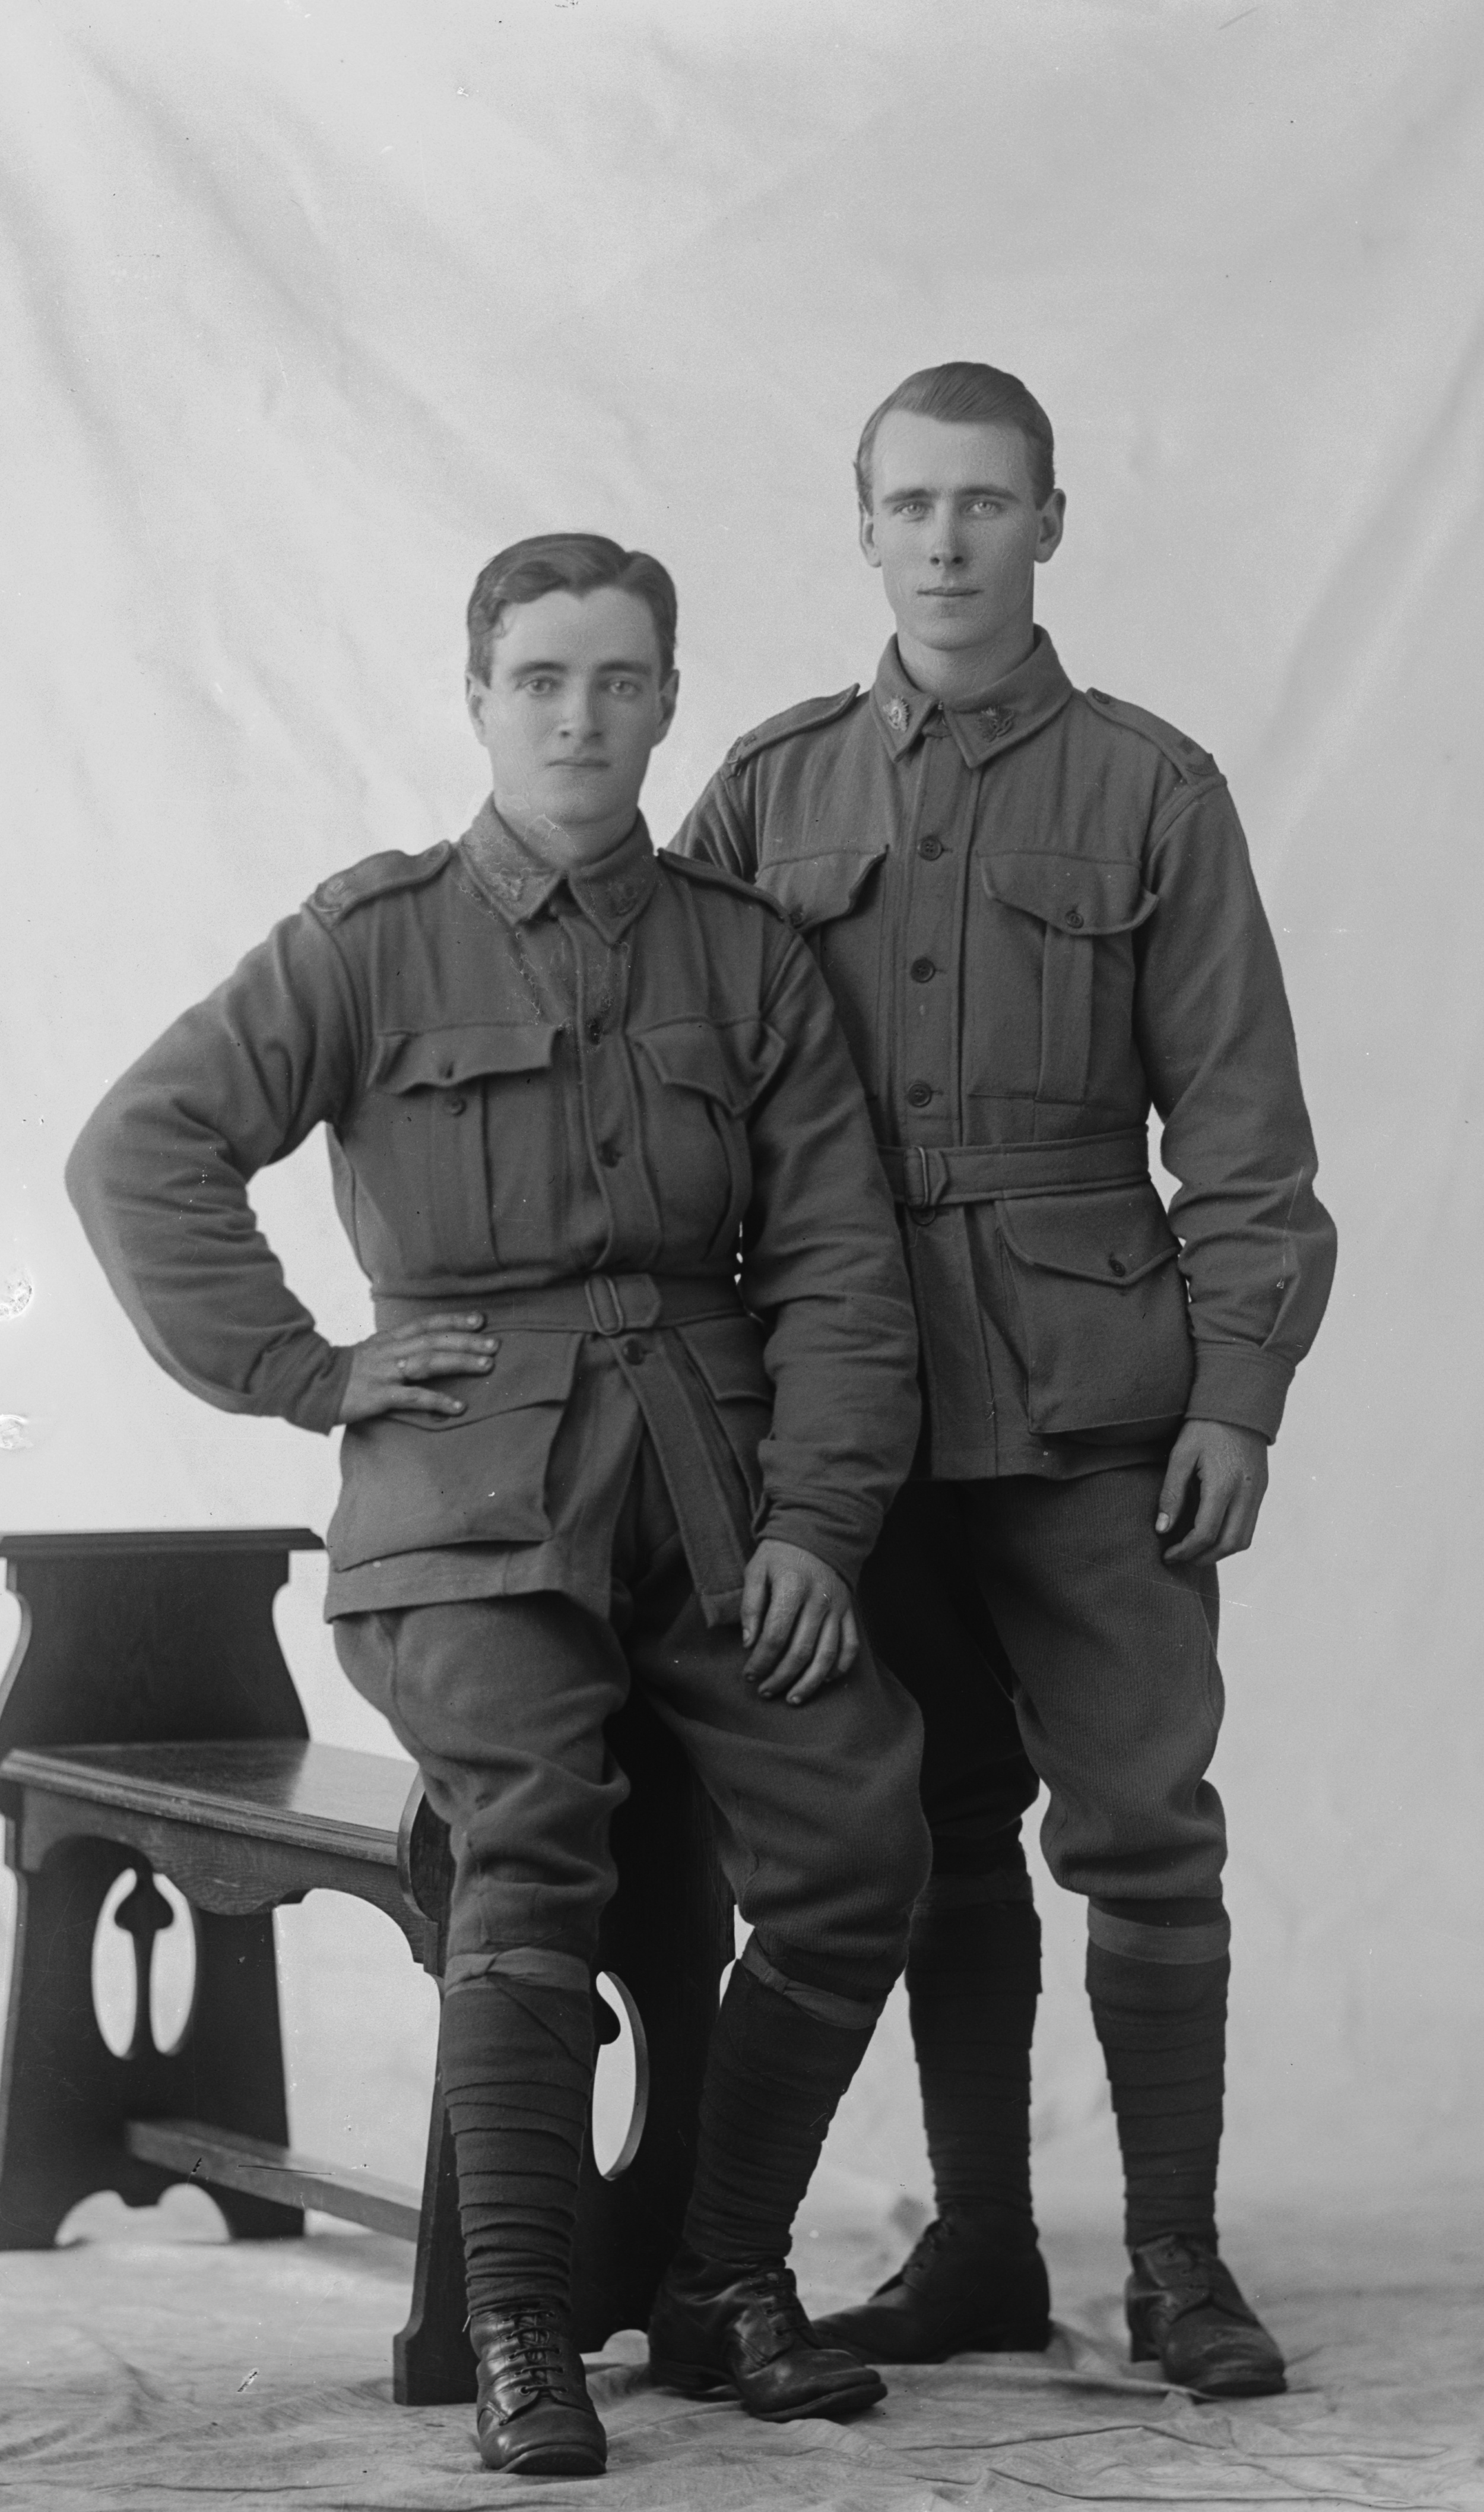 Photographed at the Dease Studio, 117 Barrack Street Perth WA Image courtesy of the State Library of Western Australia: 108181PD. Photographed with Private Henry Watkins Roberts, standing.